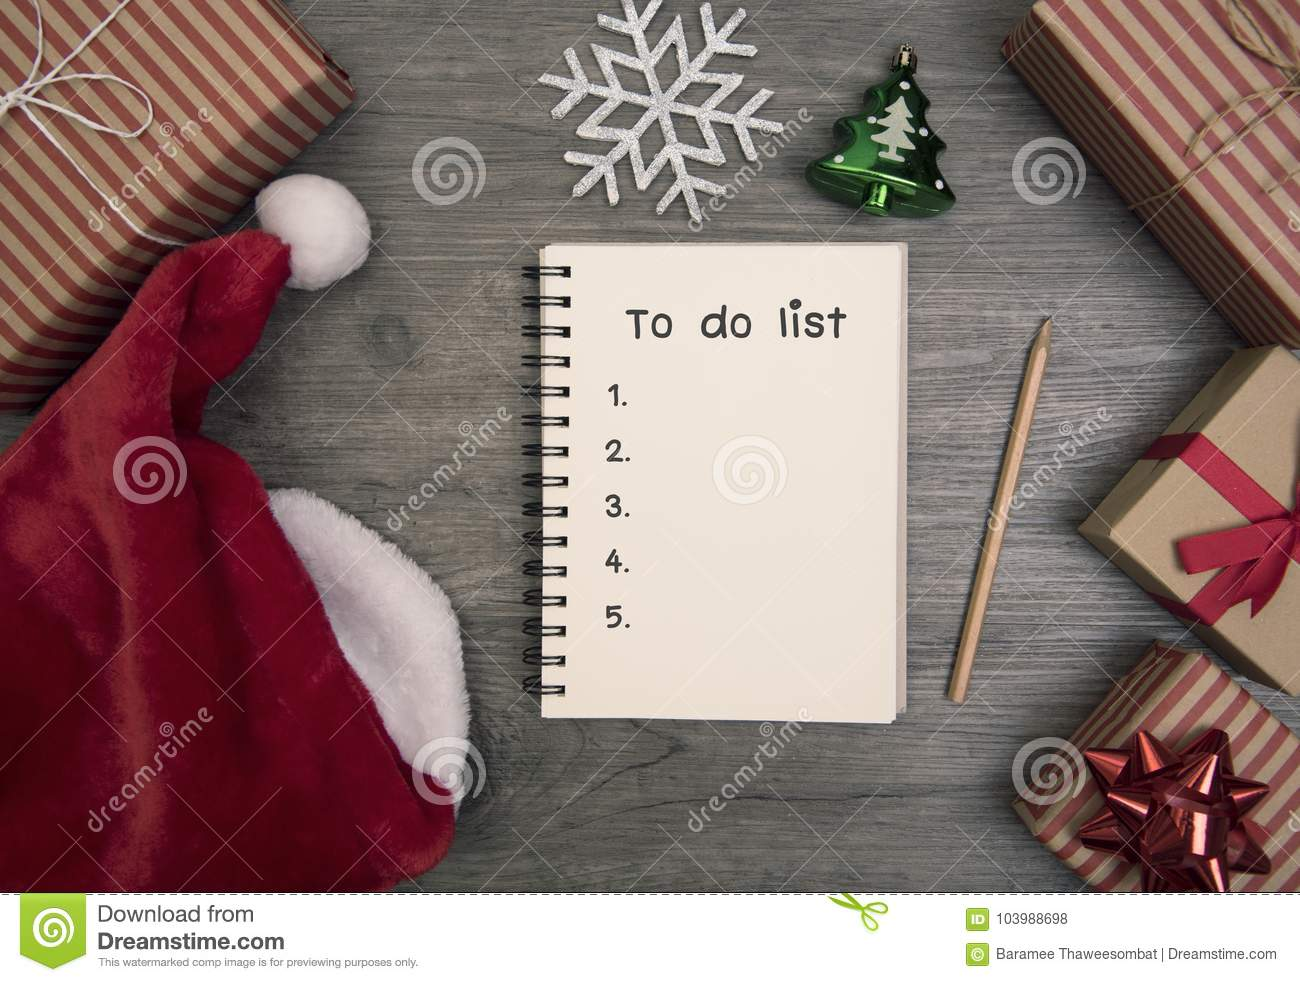 to do list for start christmas and decorated with gift box on wooden table - When Should I Start Decorating For Christmas